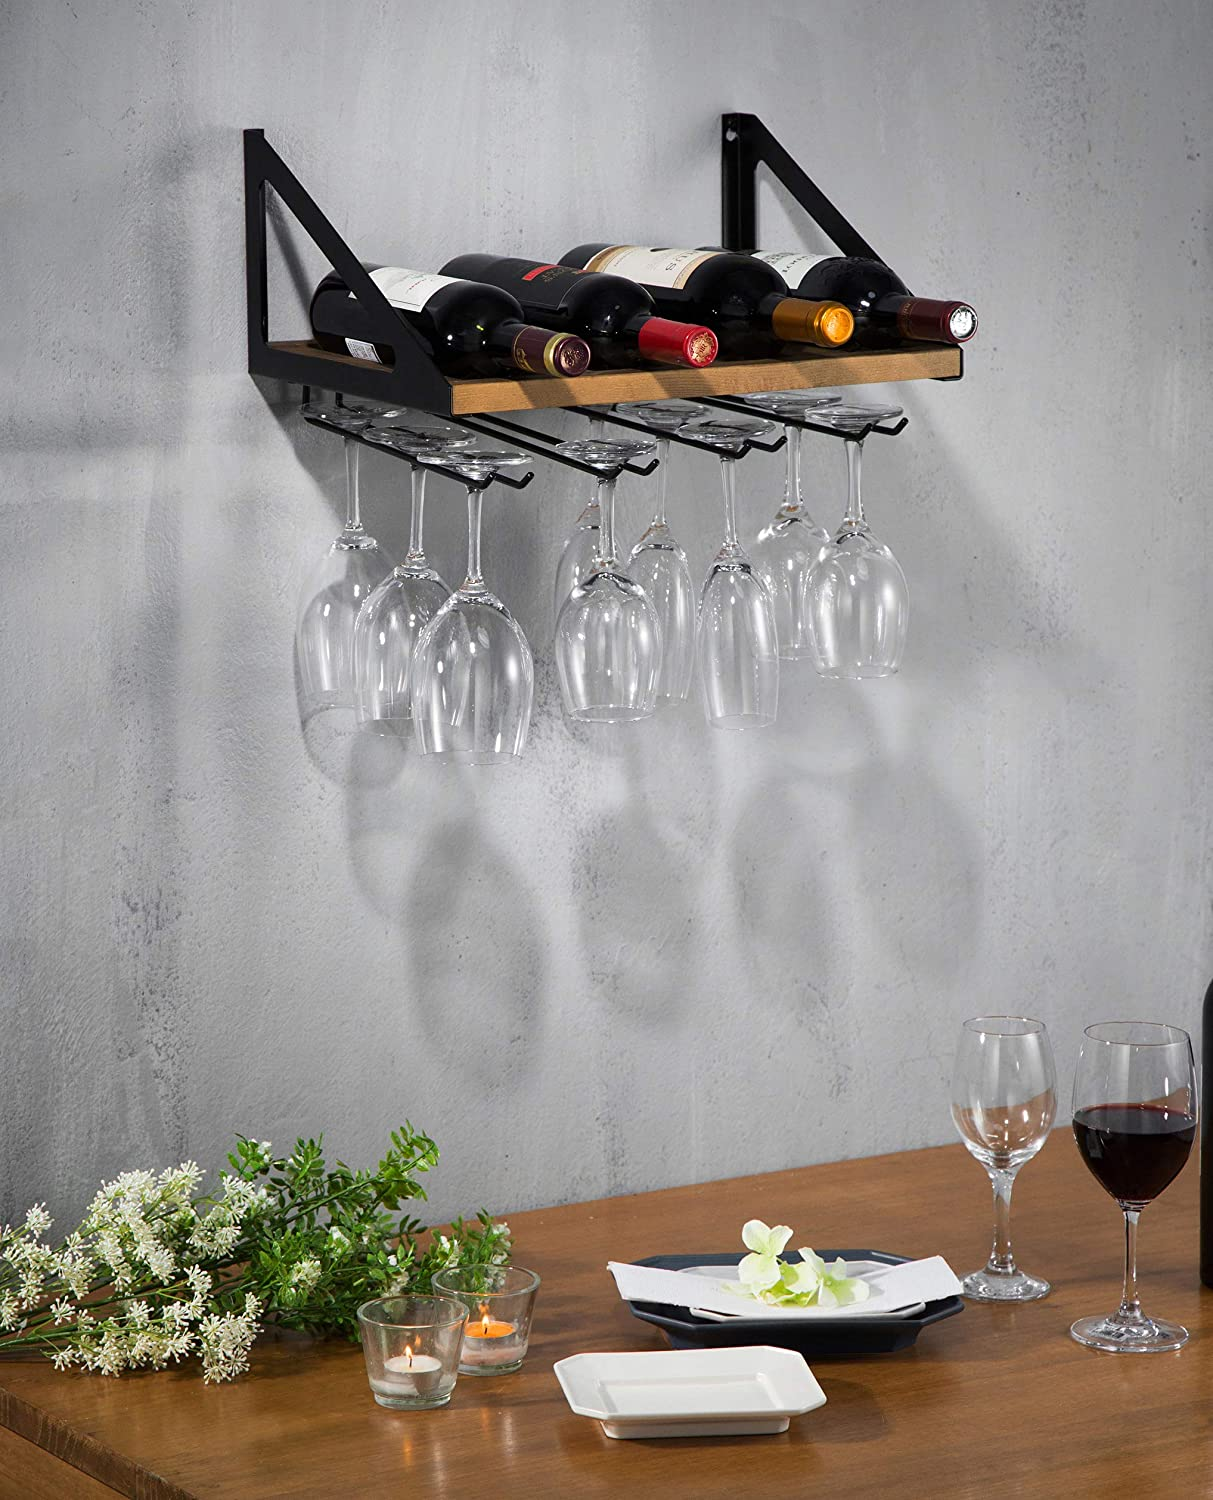 Wood MK478A JackCubeDesign Wall Mount Wine Rack with Glass Holder